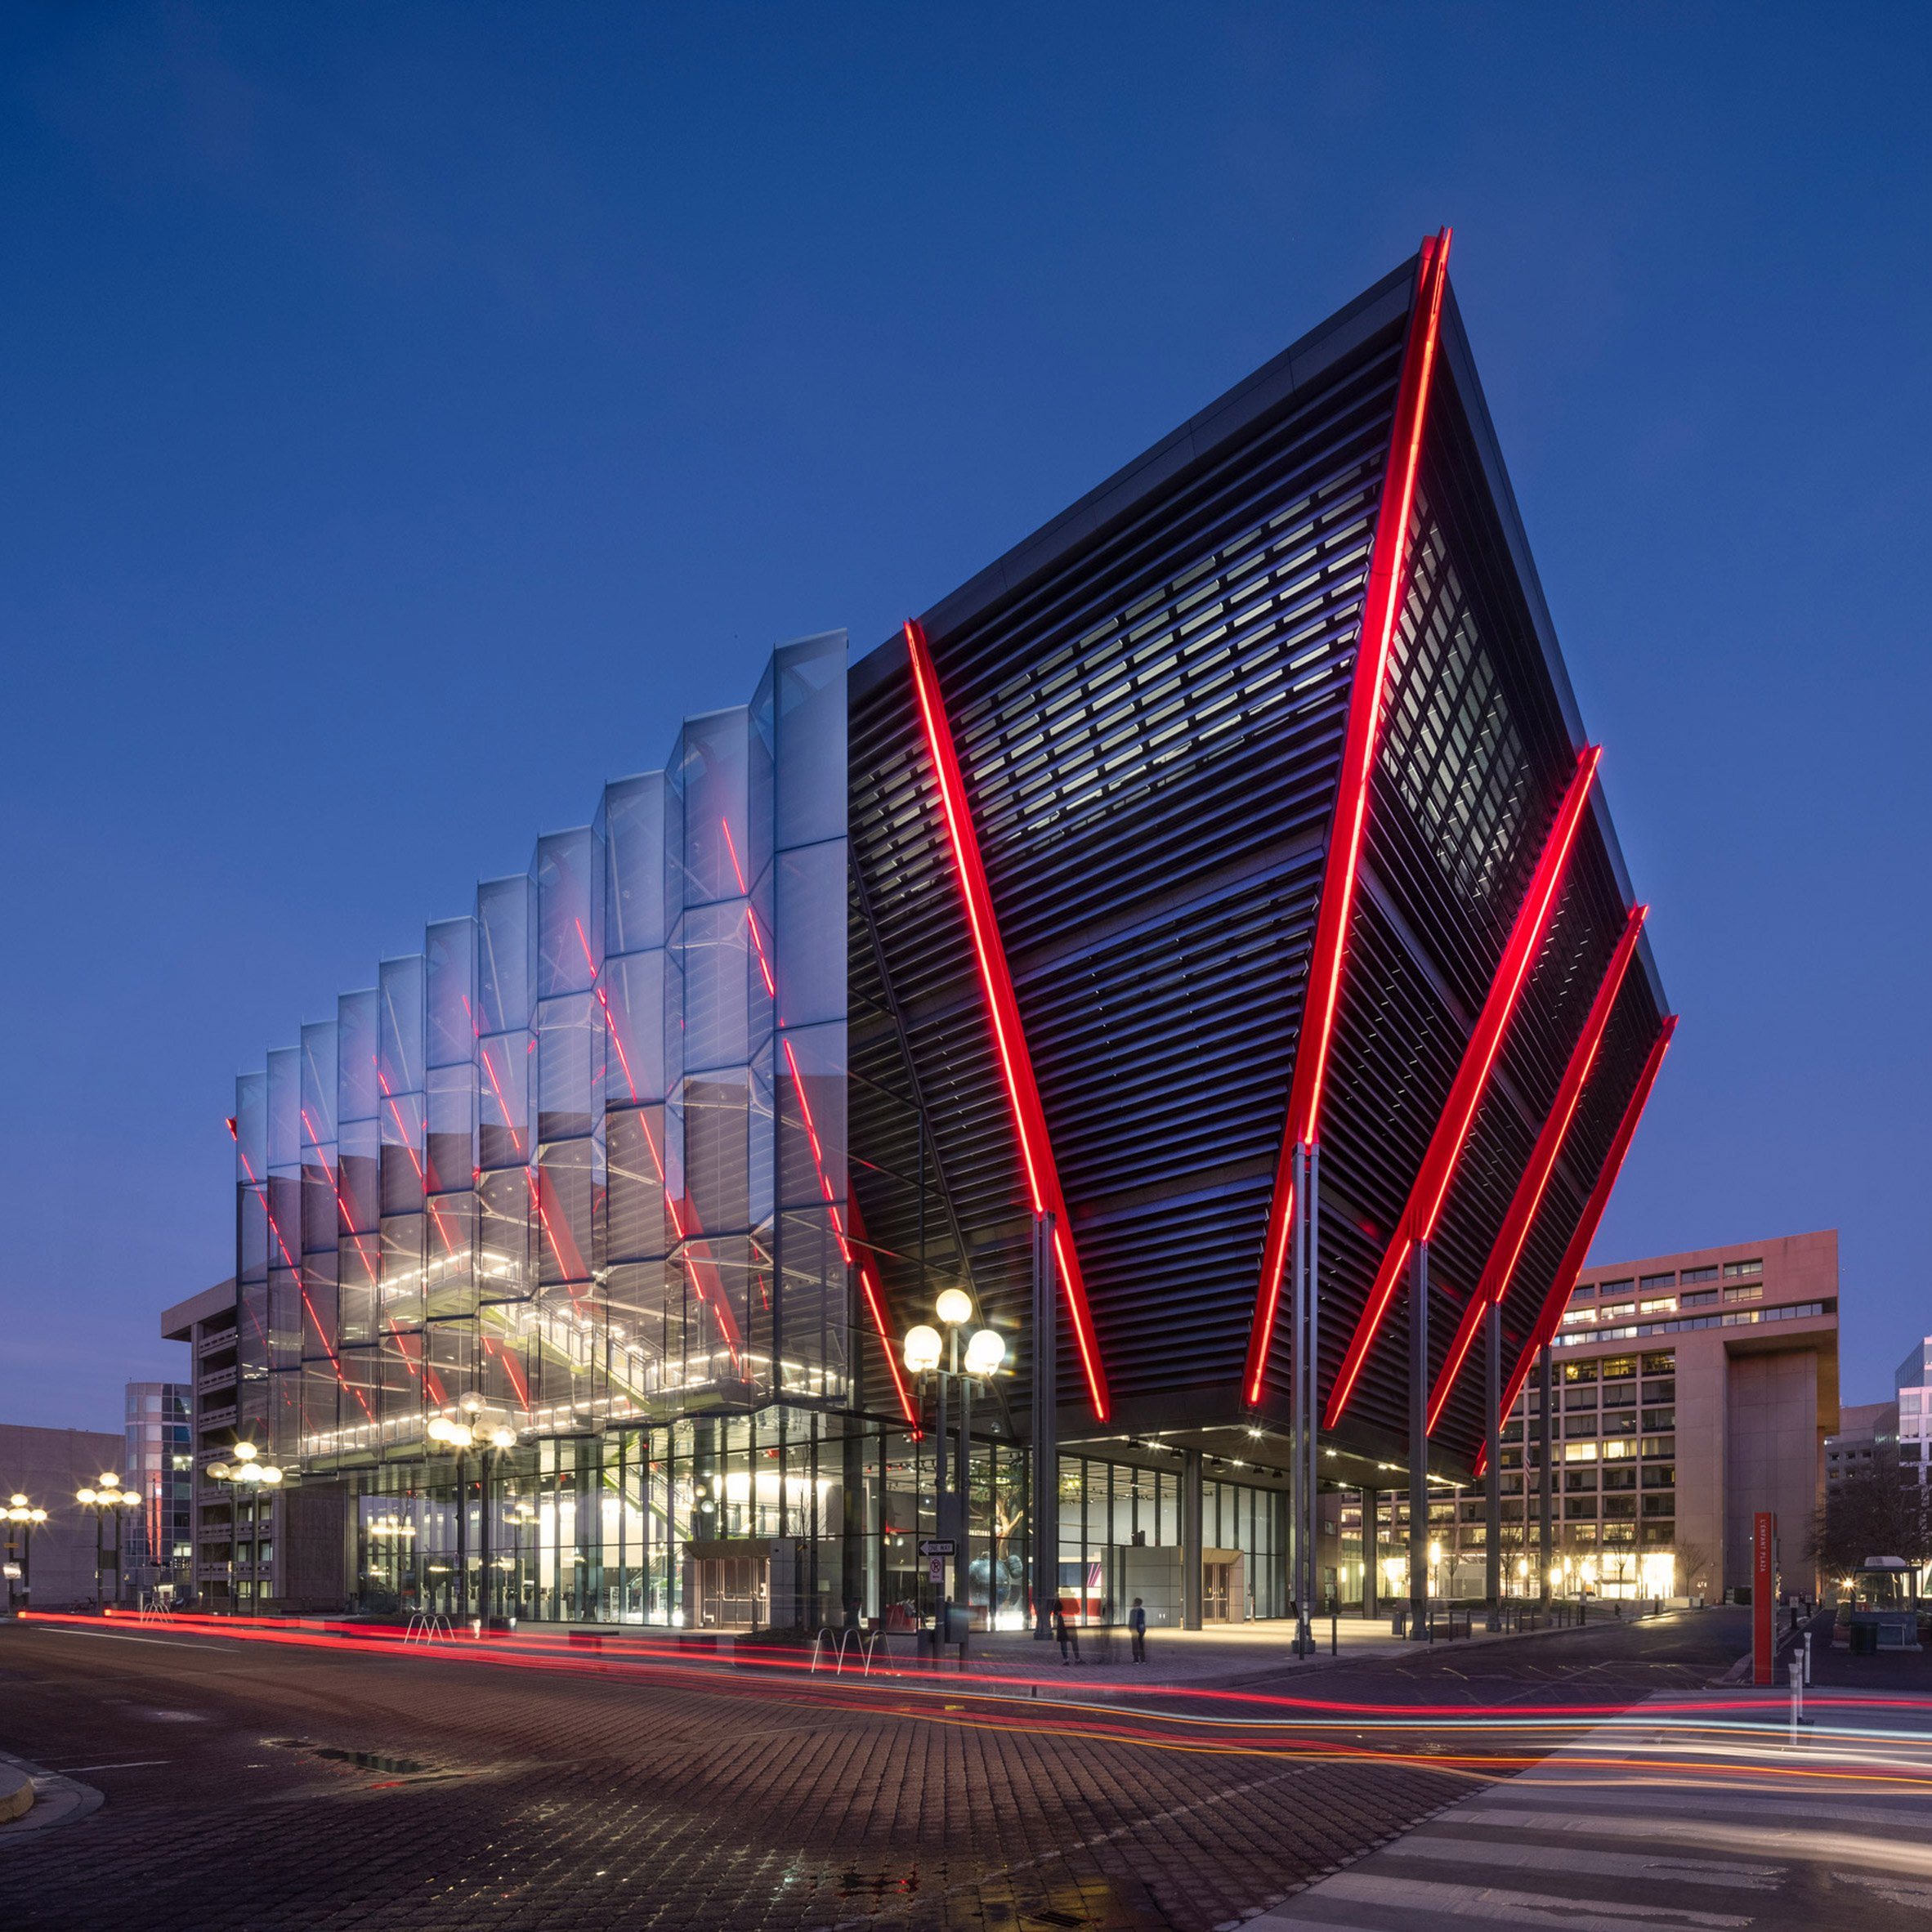 Top 10 US architecture projects of 2019: International Spy Museum by Rogers Stirk Harbour Partners